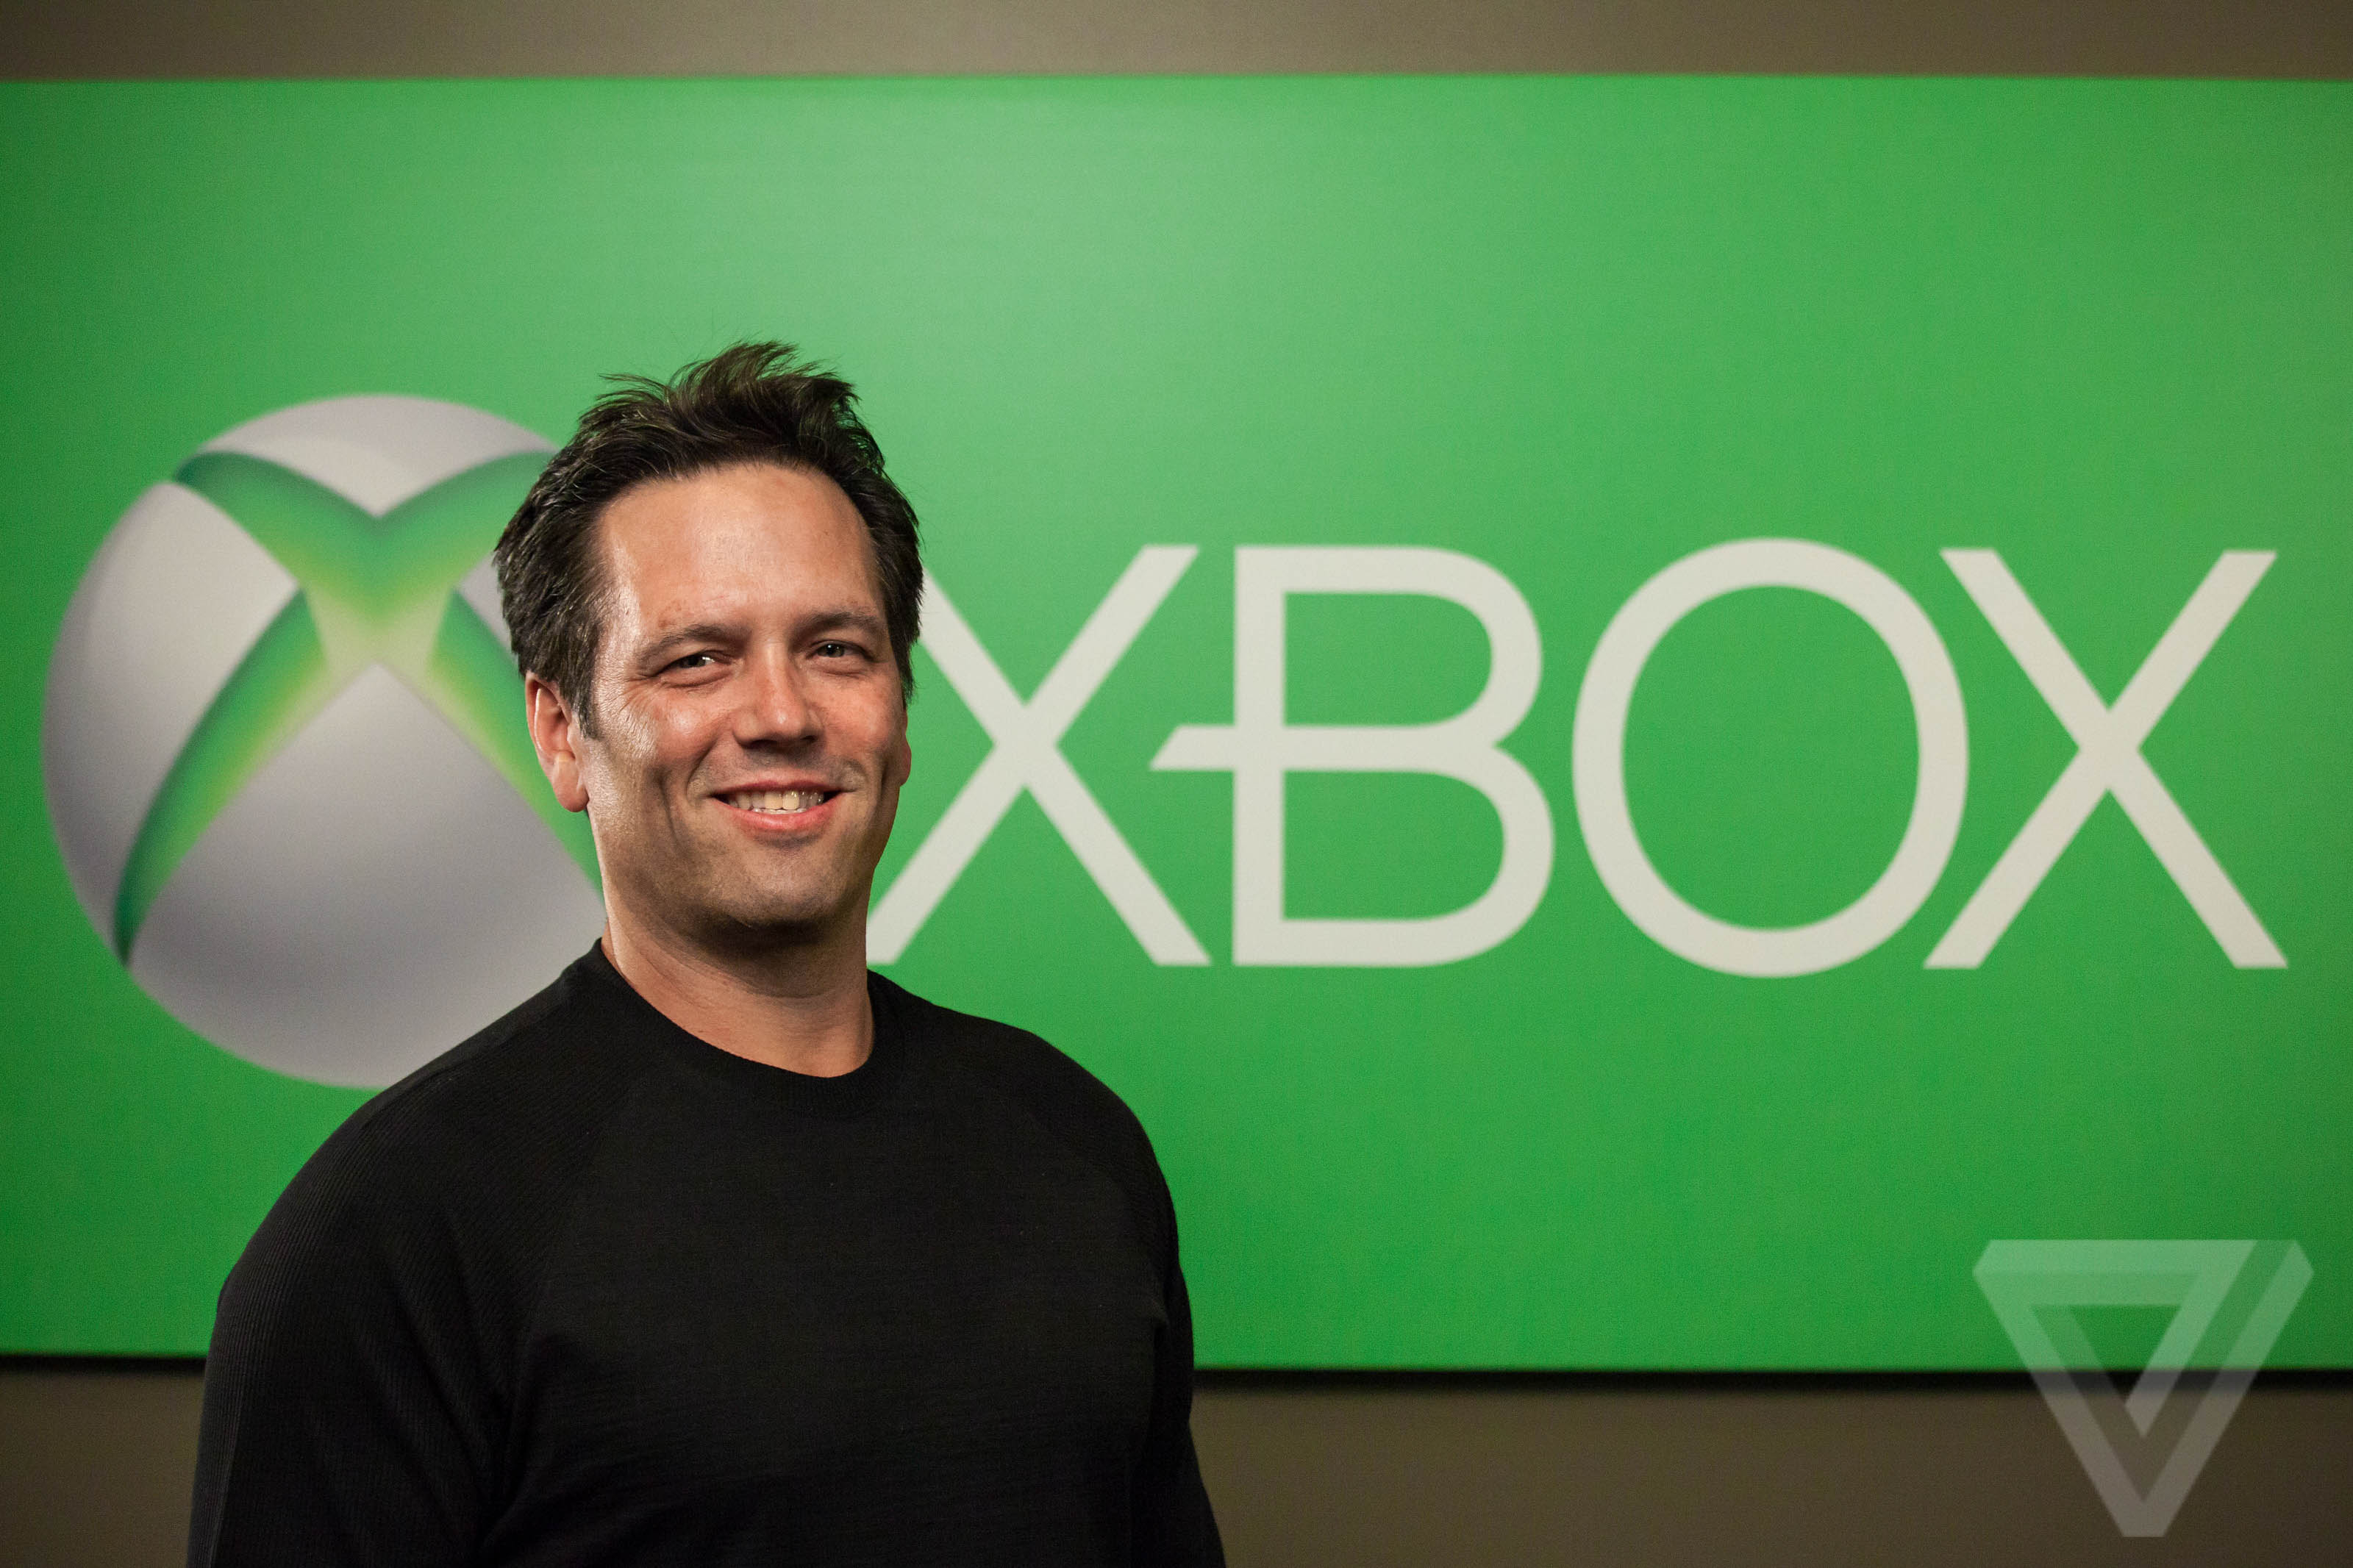 Phil Spencer Microsoft Xbox stock